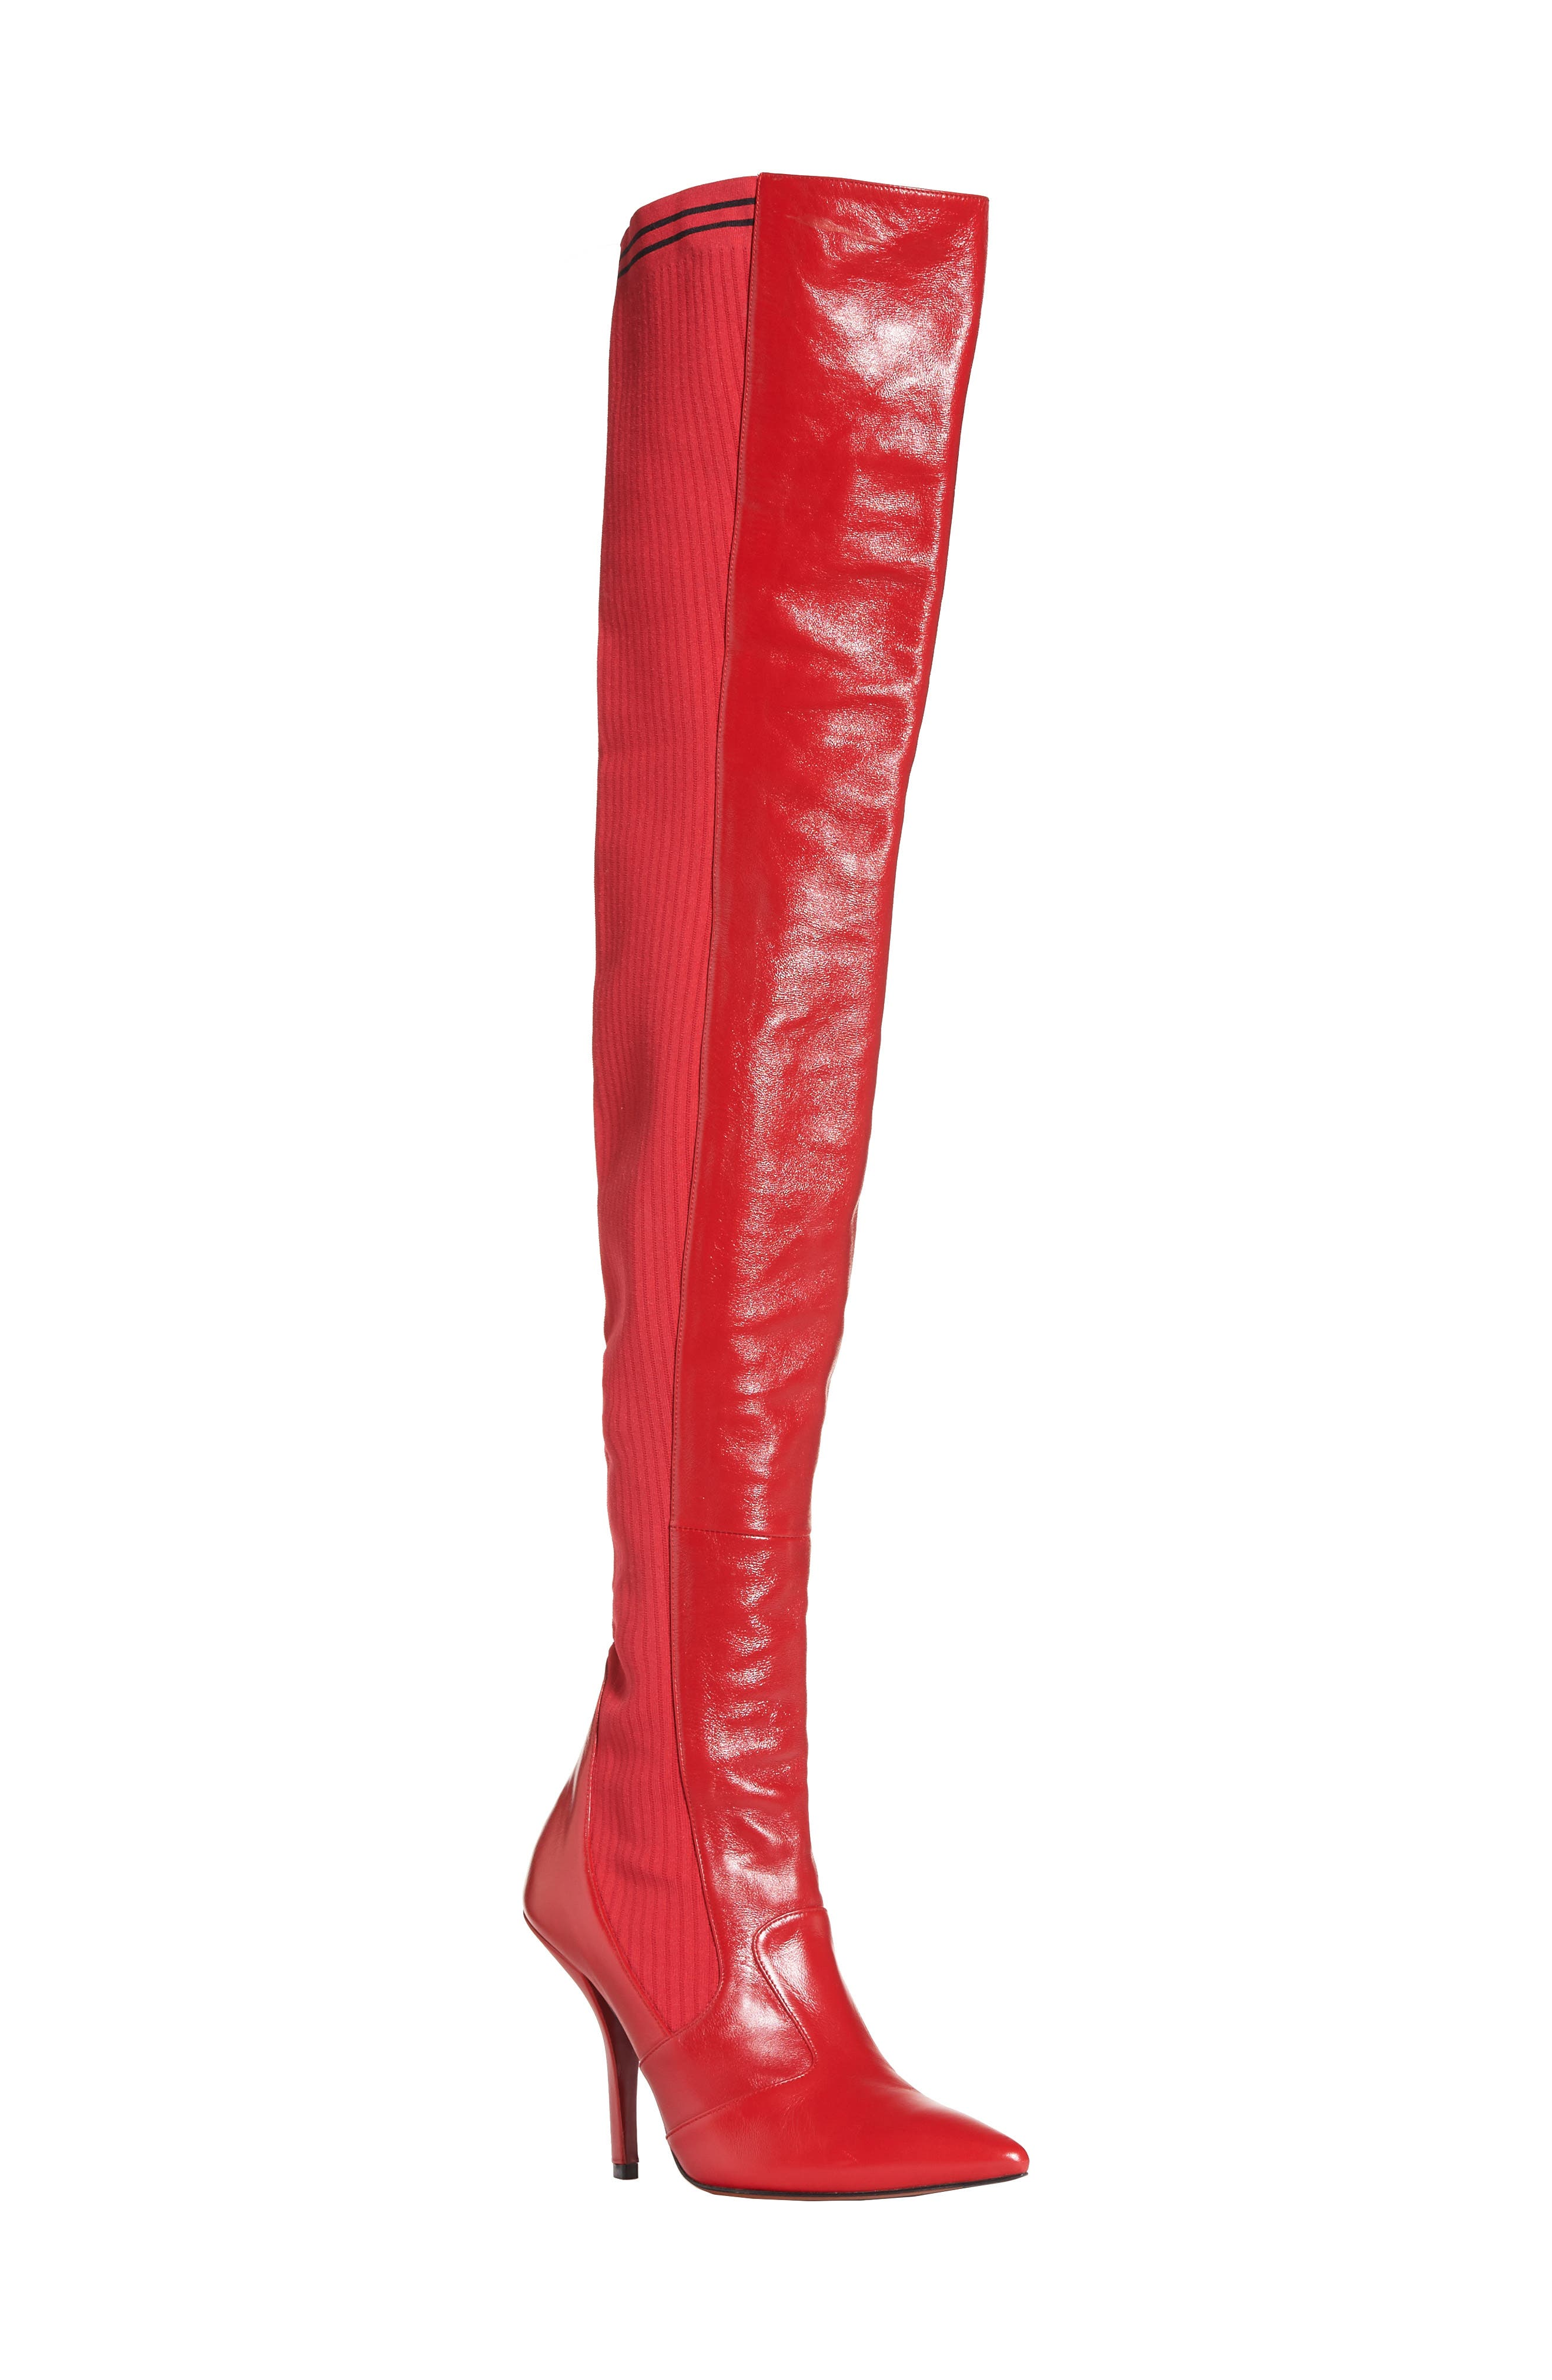 Rockoko Over the Knee Boot,                             Main thumbnail 1, color,                             Cherry Leather